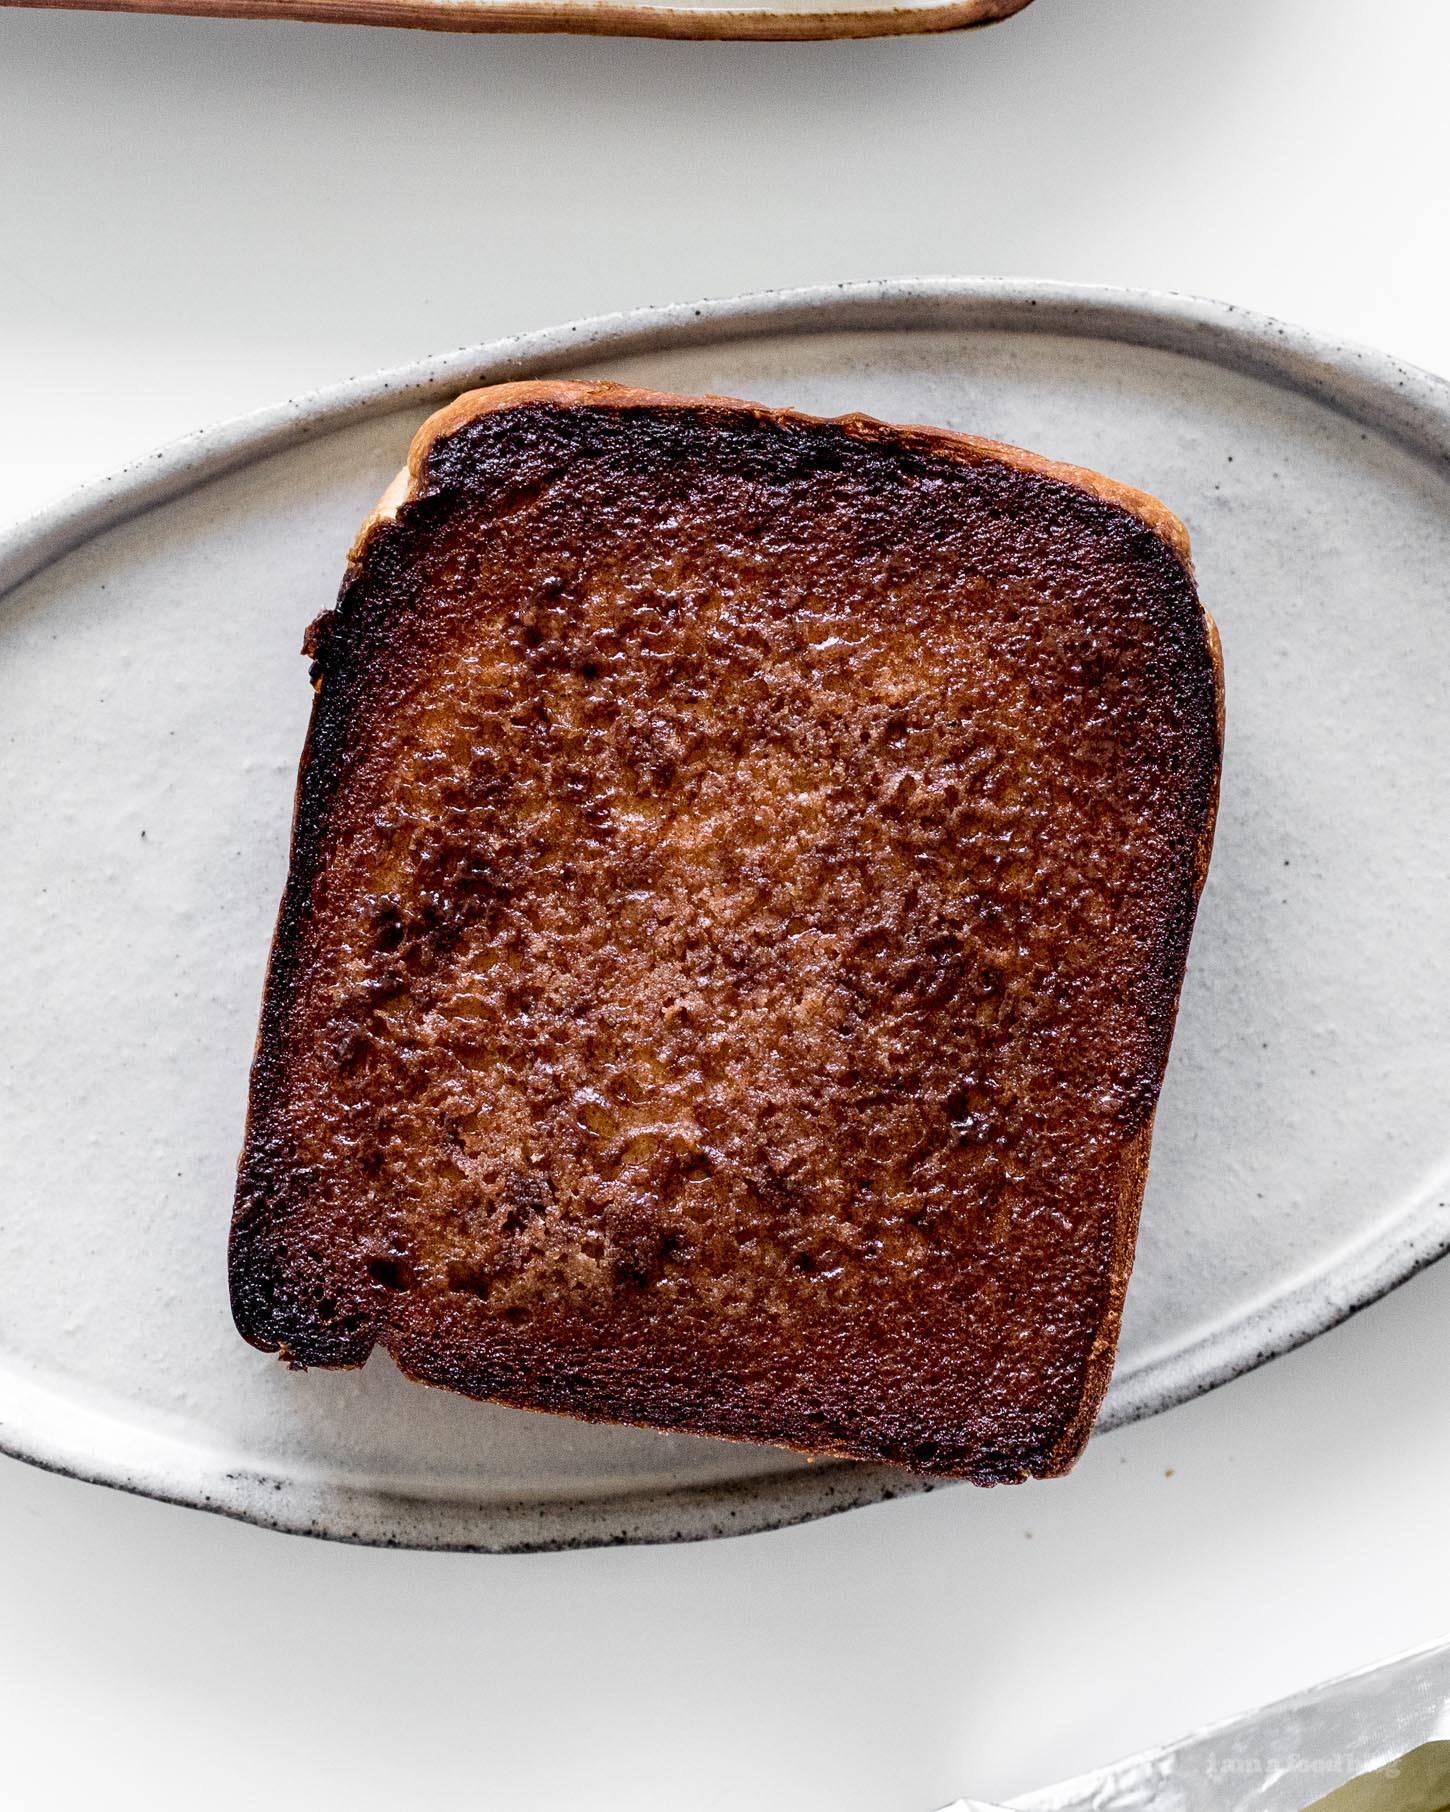 Caramelized Cinnamon Toast Recipe | www.iamafoodblog.com